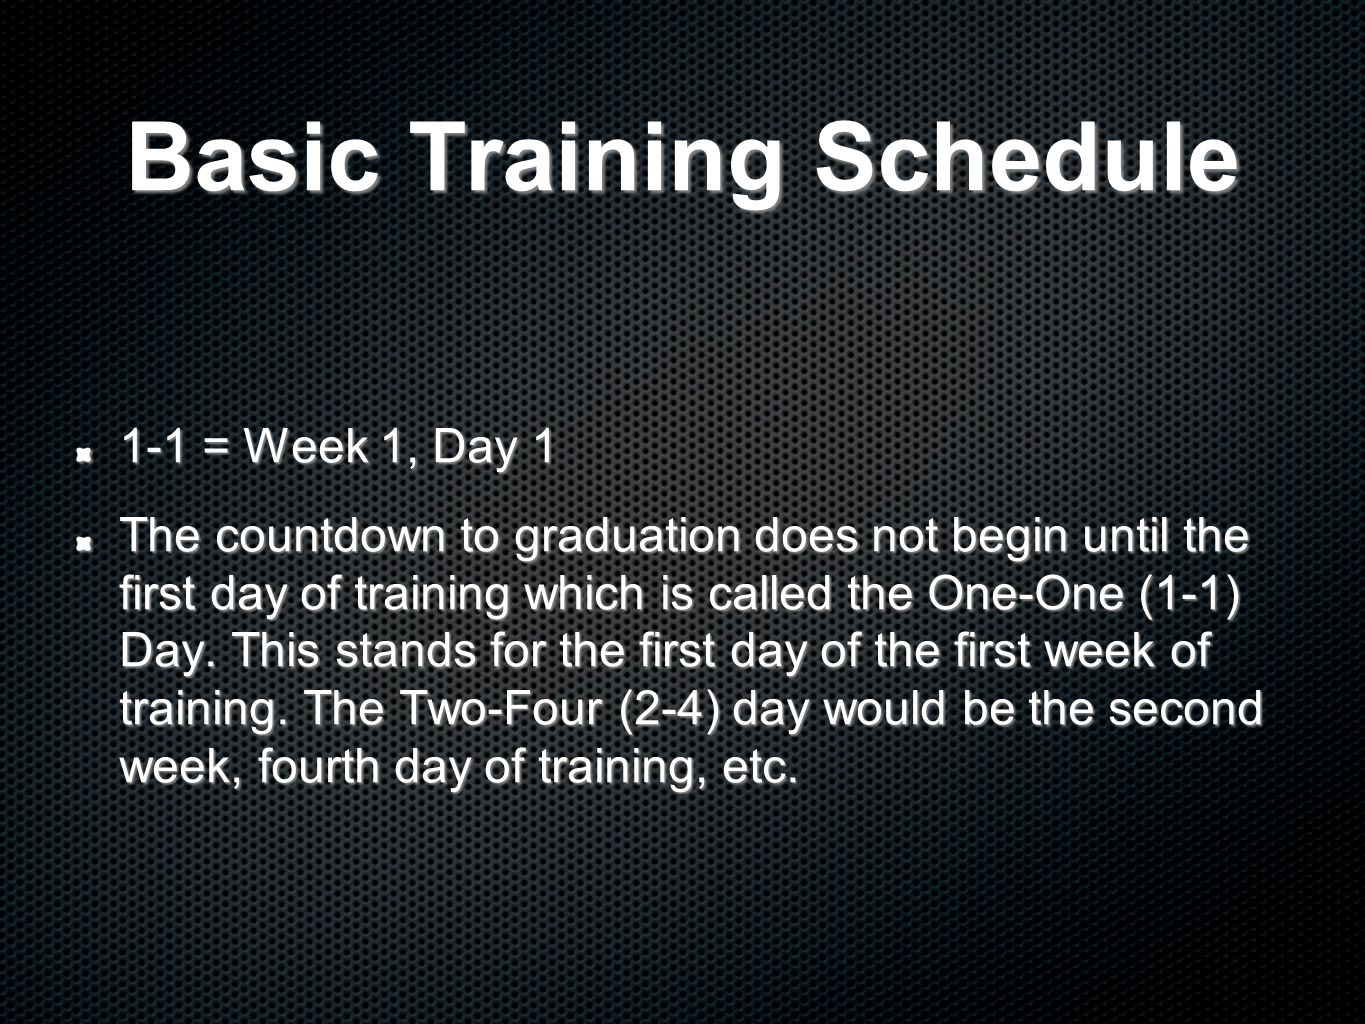 Basic Training Schedule